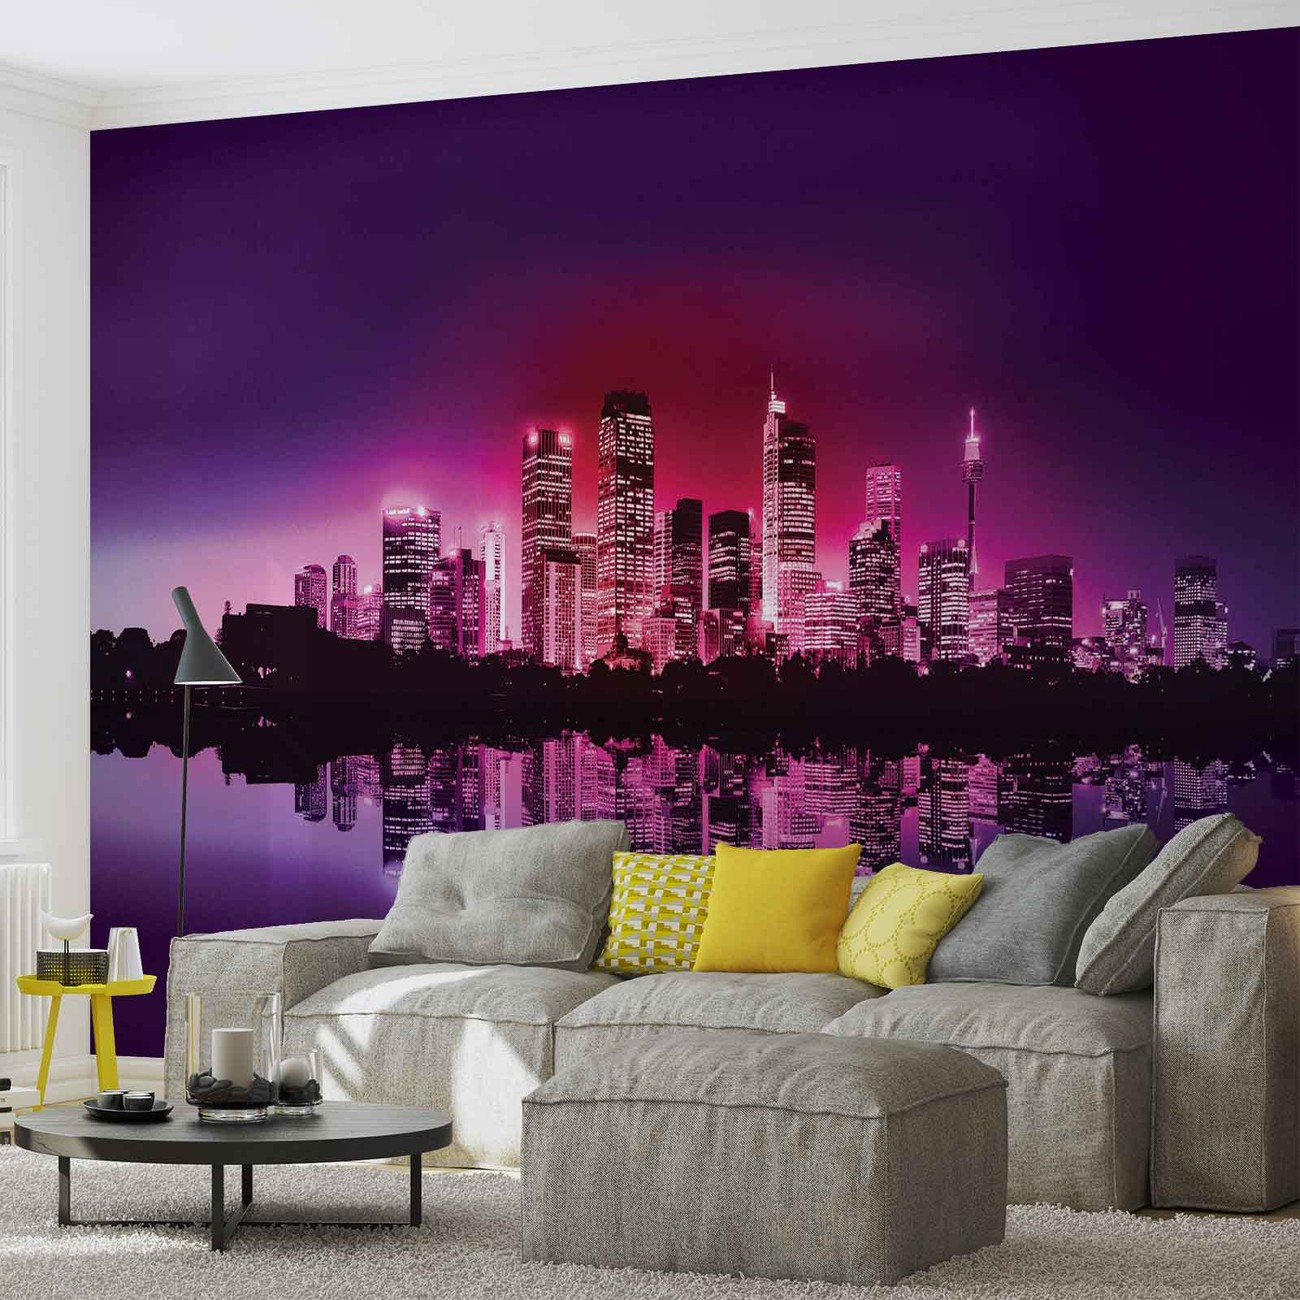 city new york skyline wall paper mural buy at. Black Bedroom Furniture Sets. Home Design Ideas